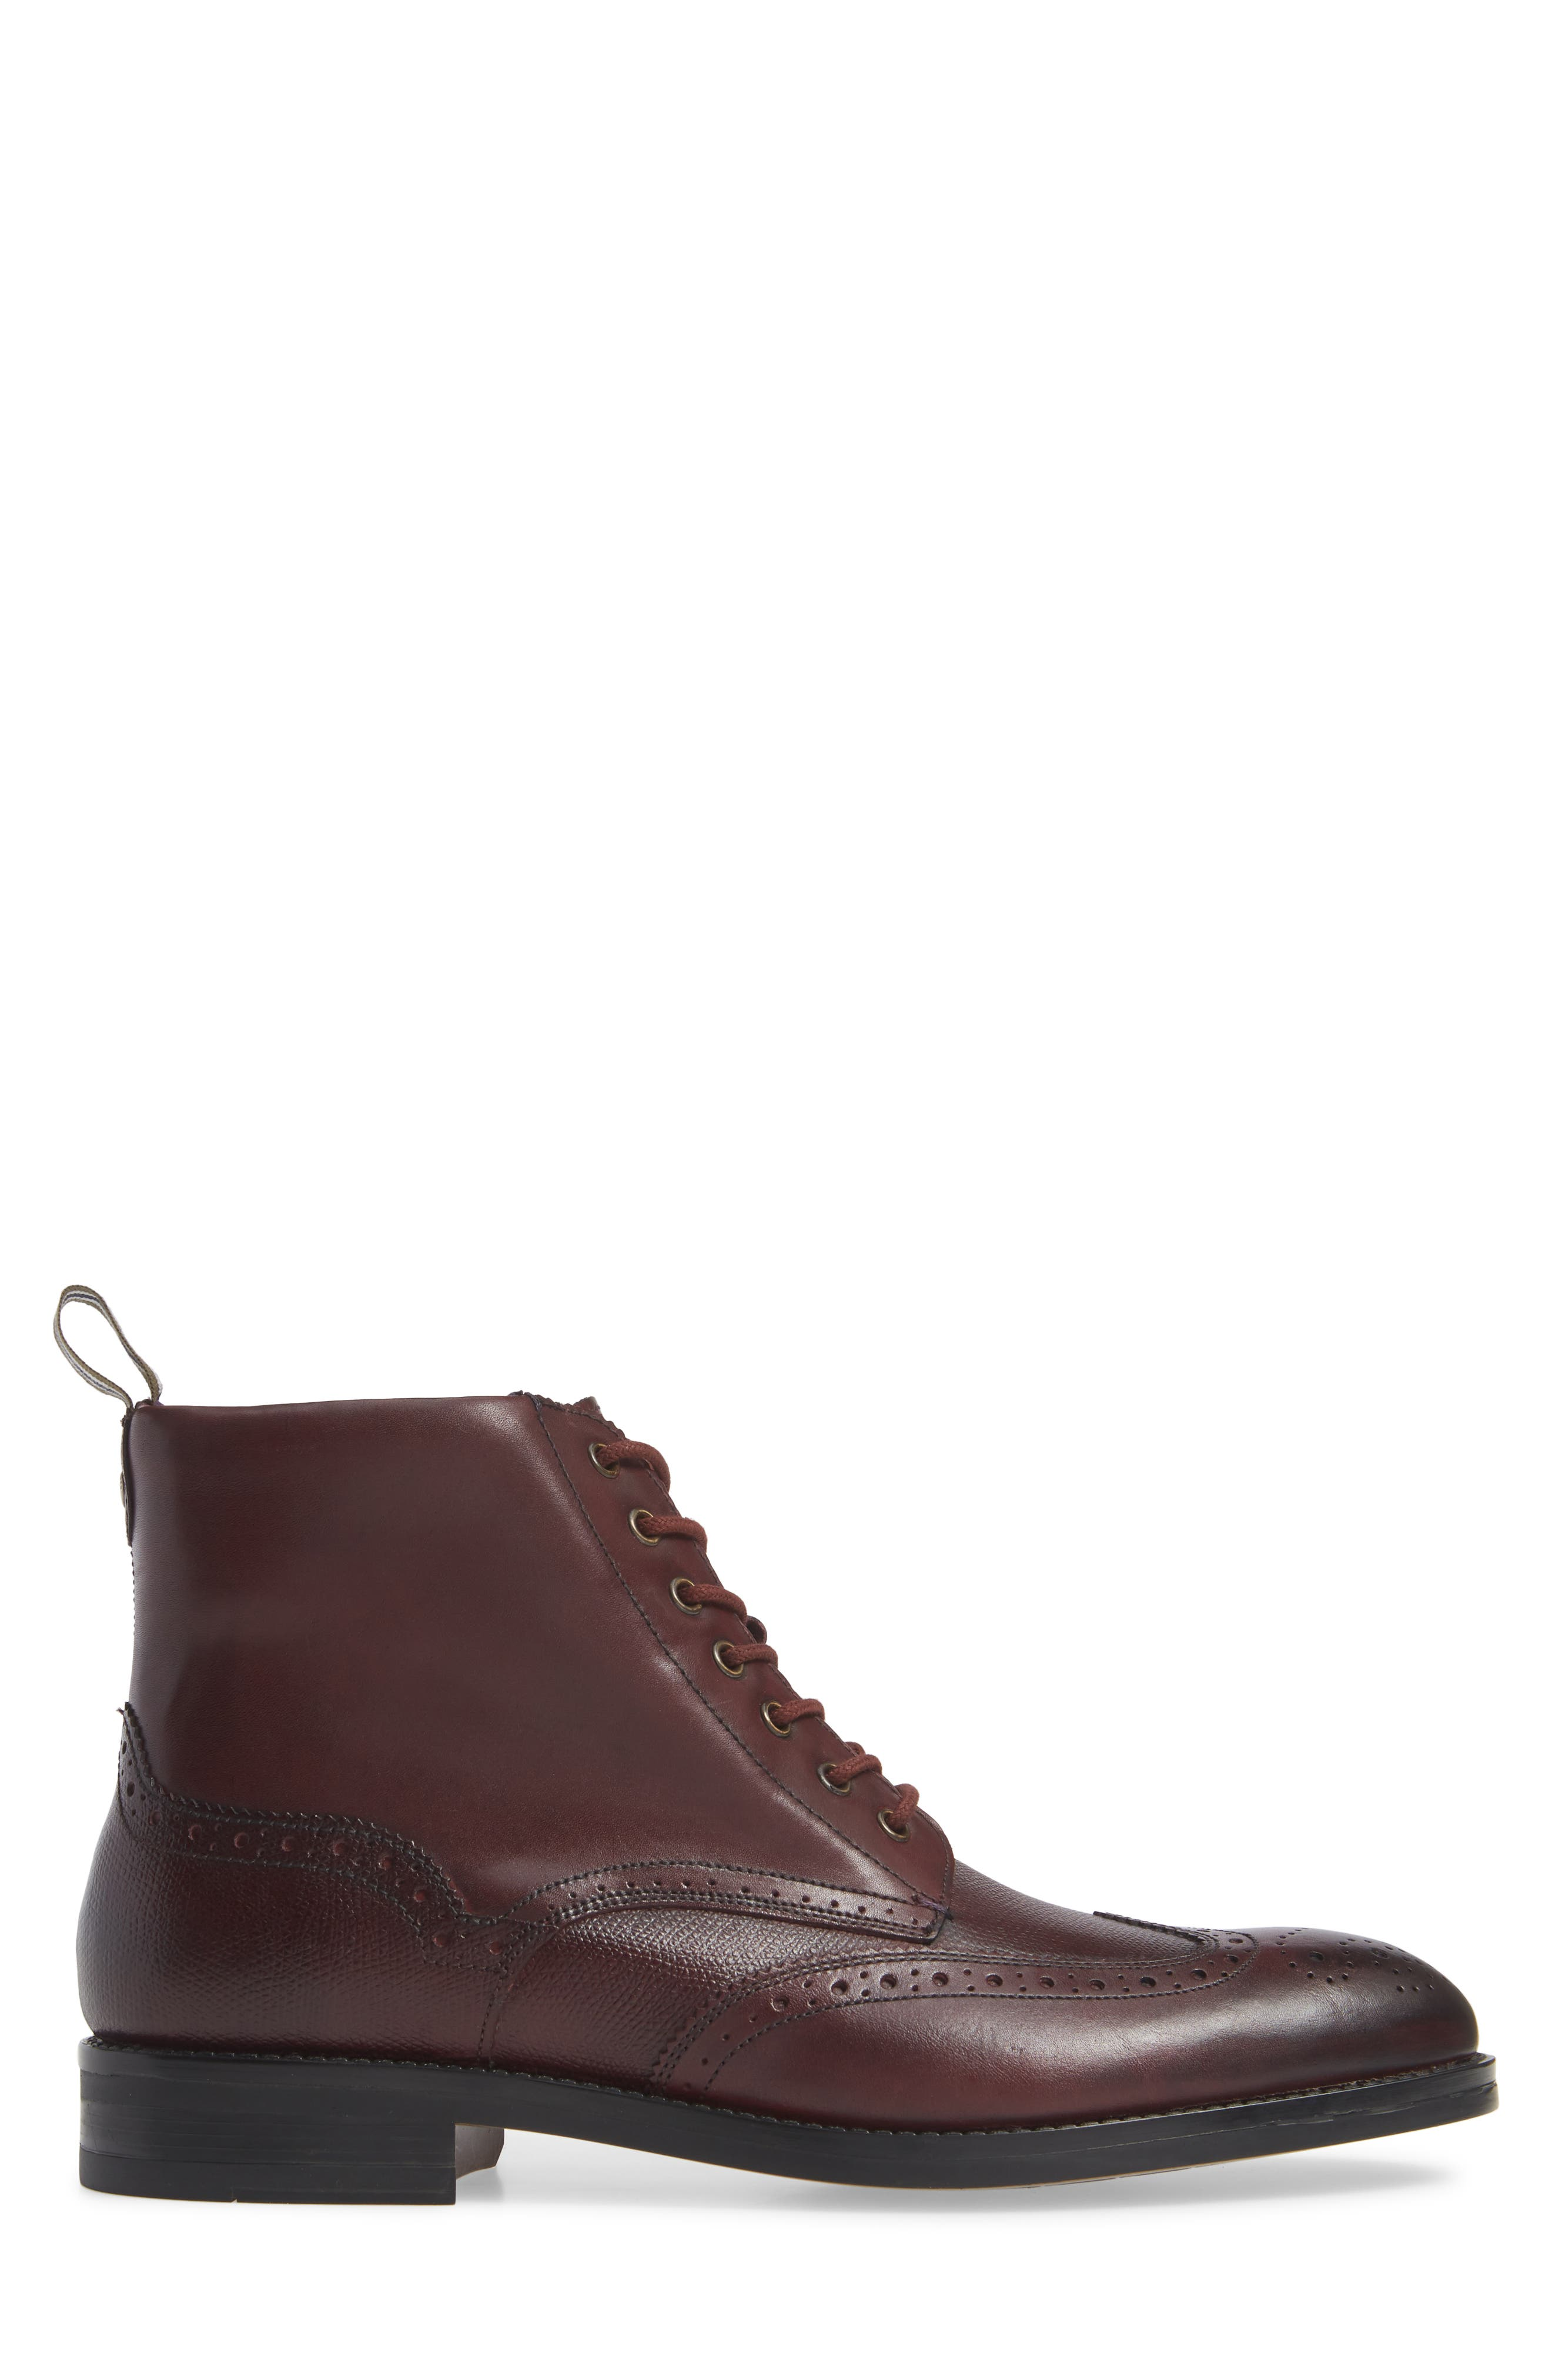 Brogue Ankle Boot,                             Alternate thumbnail 3, color,                             DARK RED LEATHER